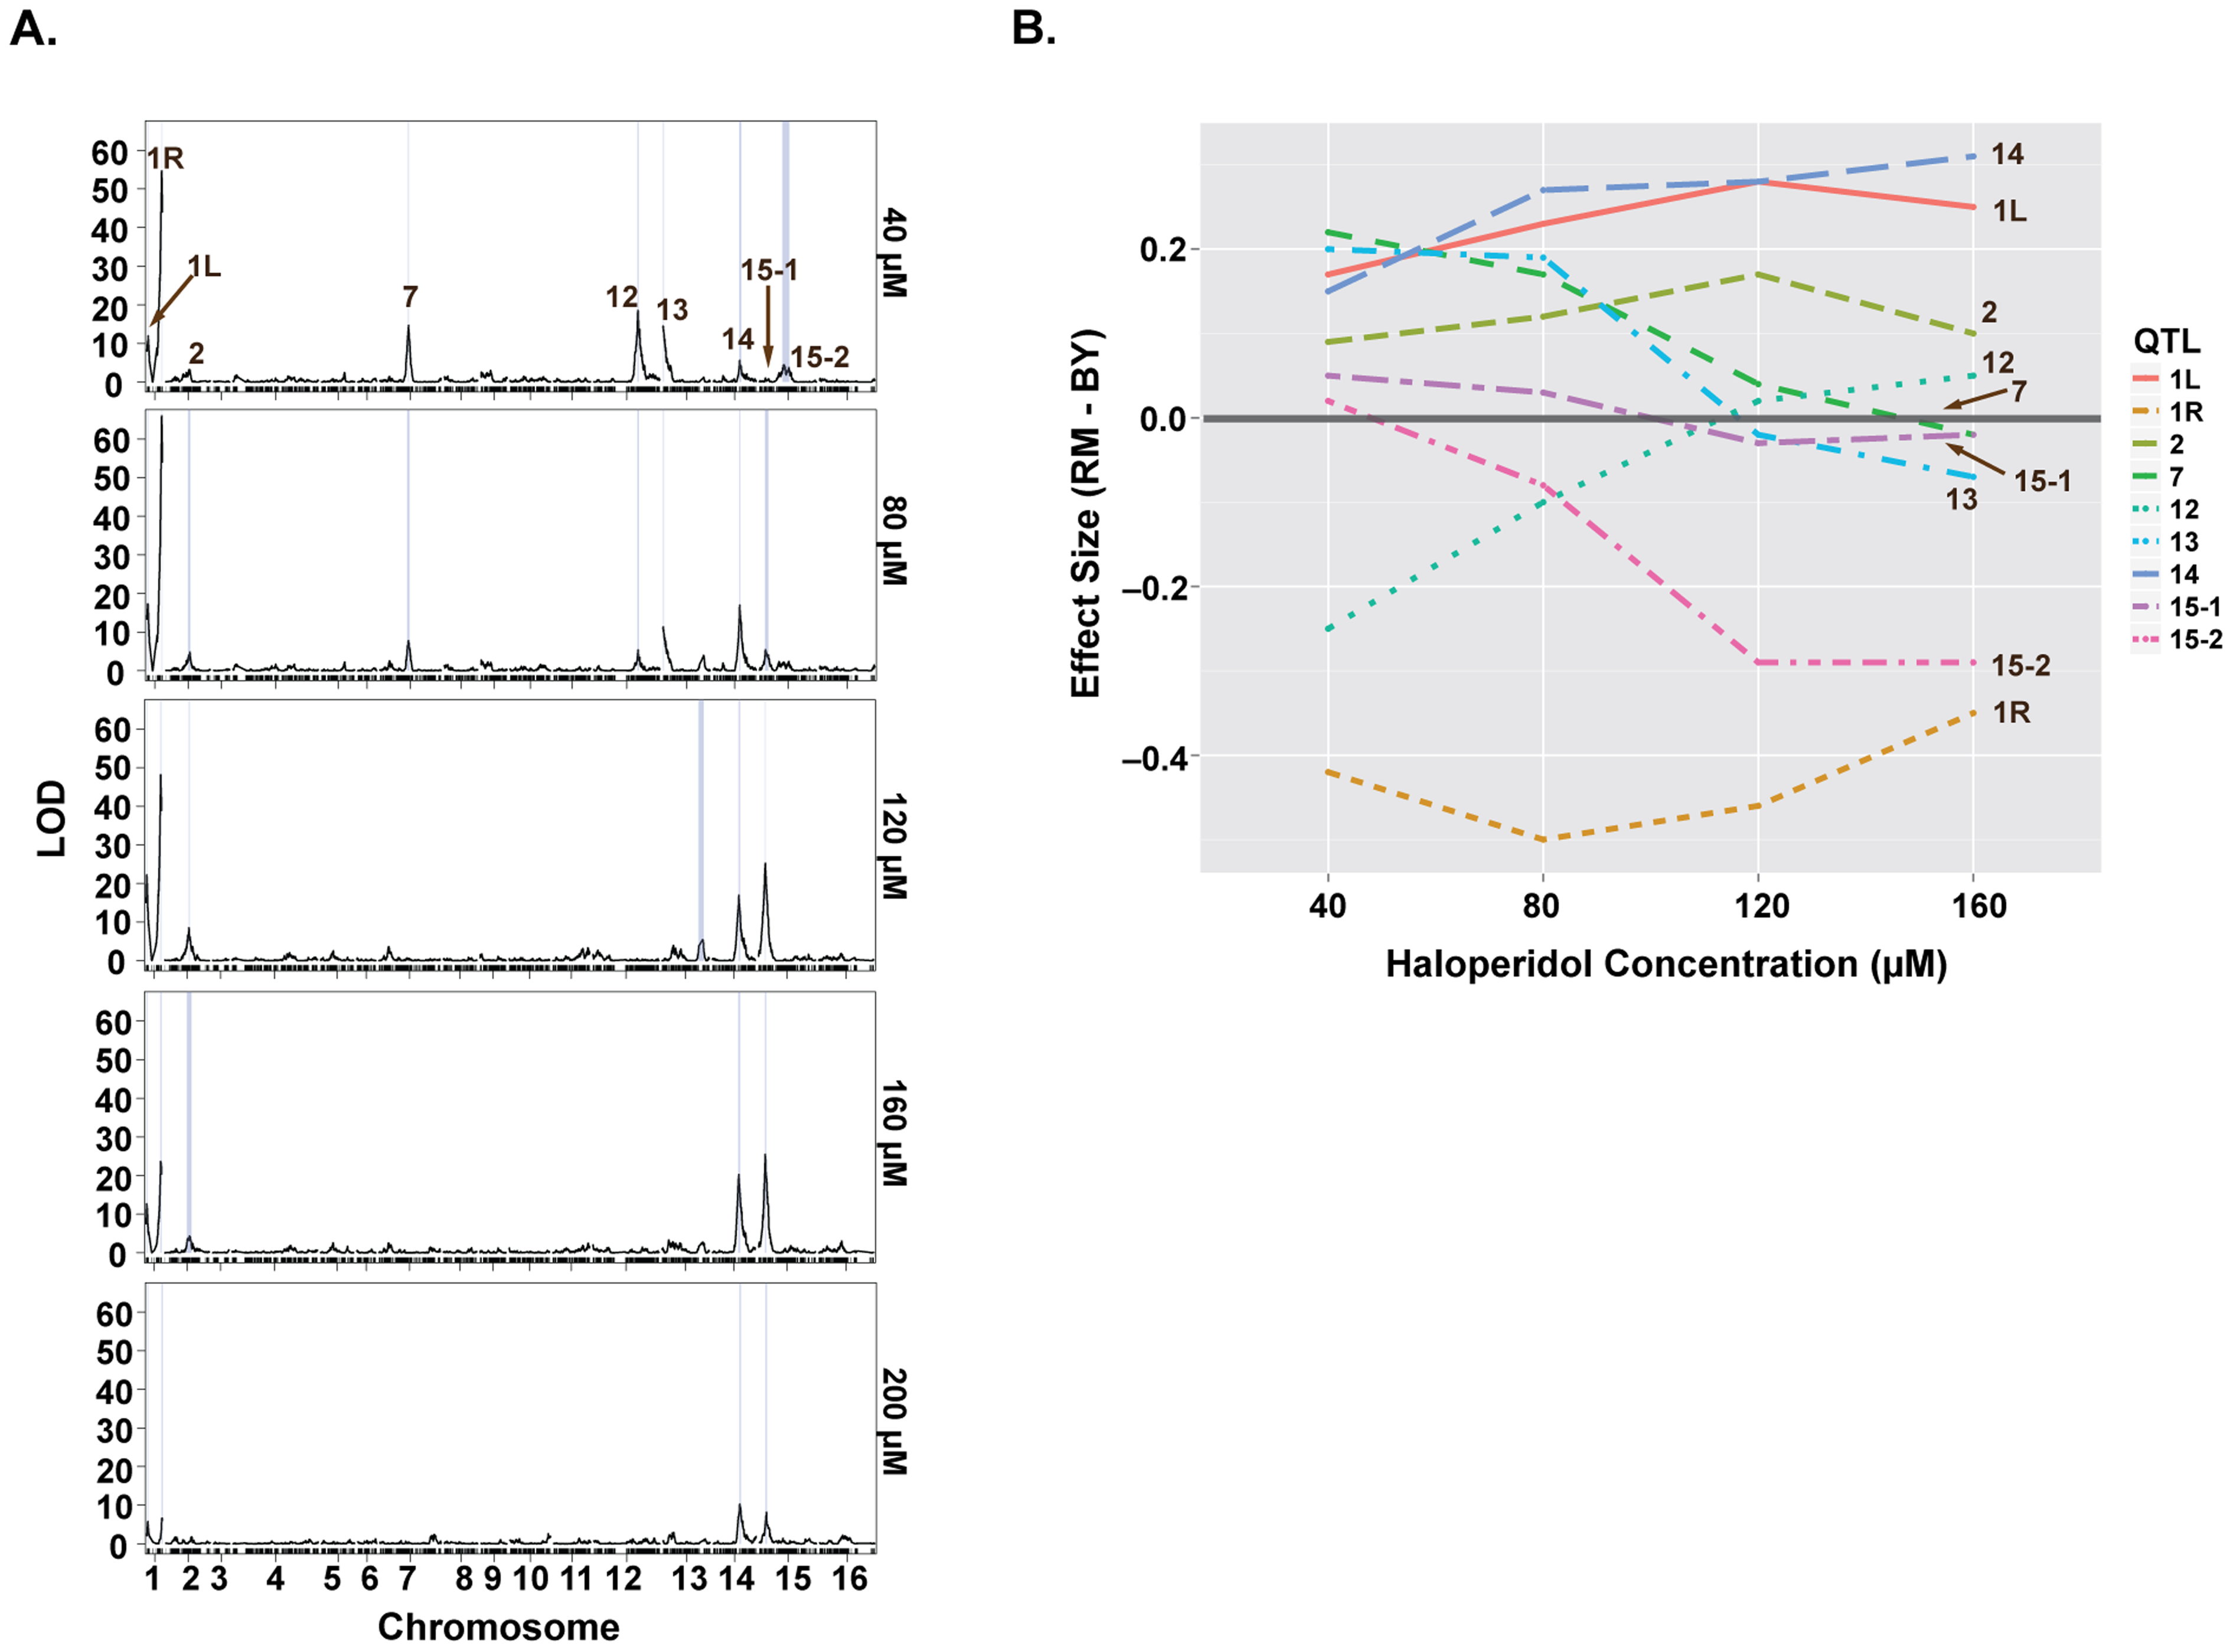 Loci underlying haloperidol resistance have dose-dependent effects.